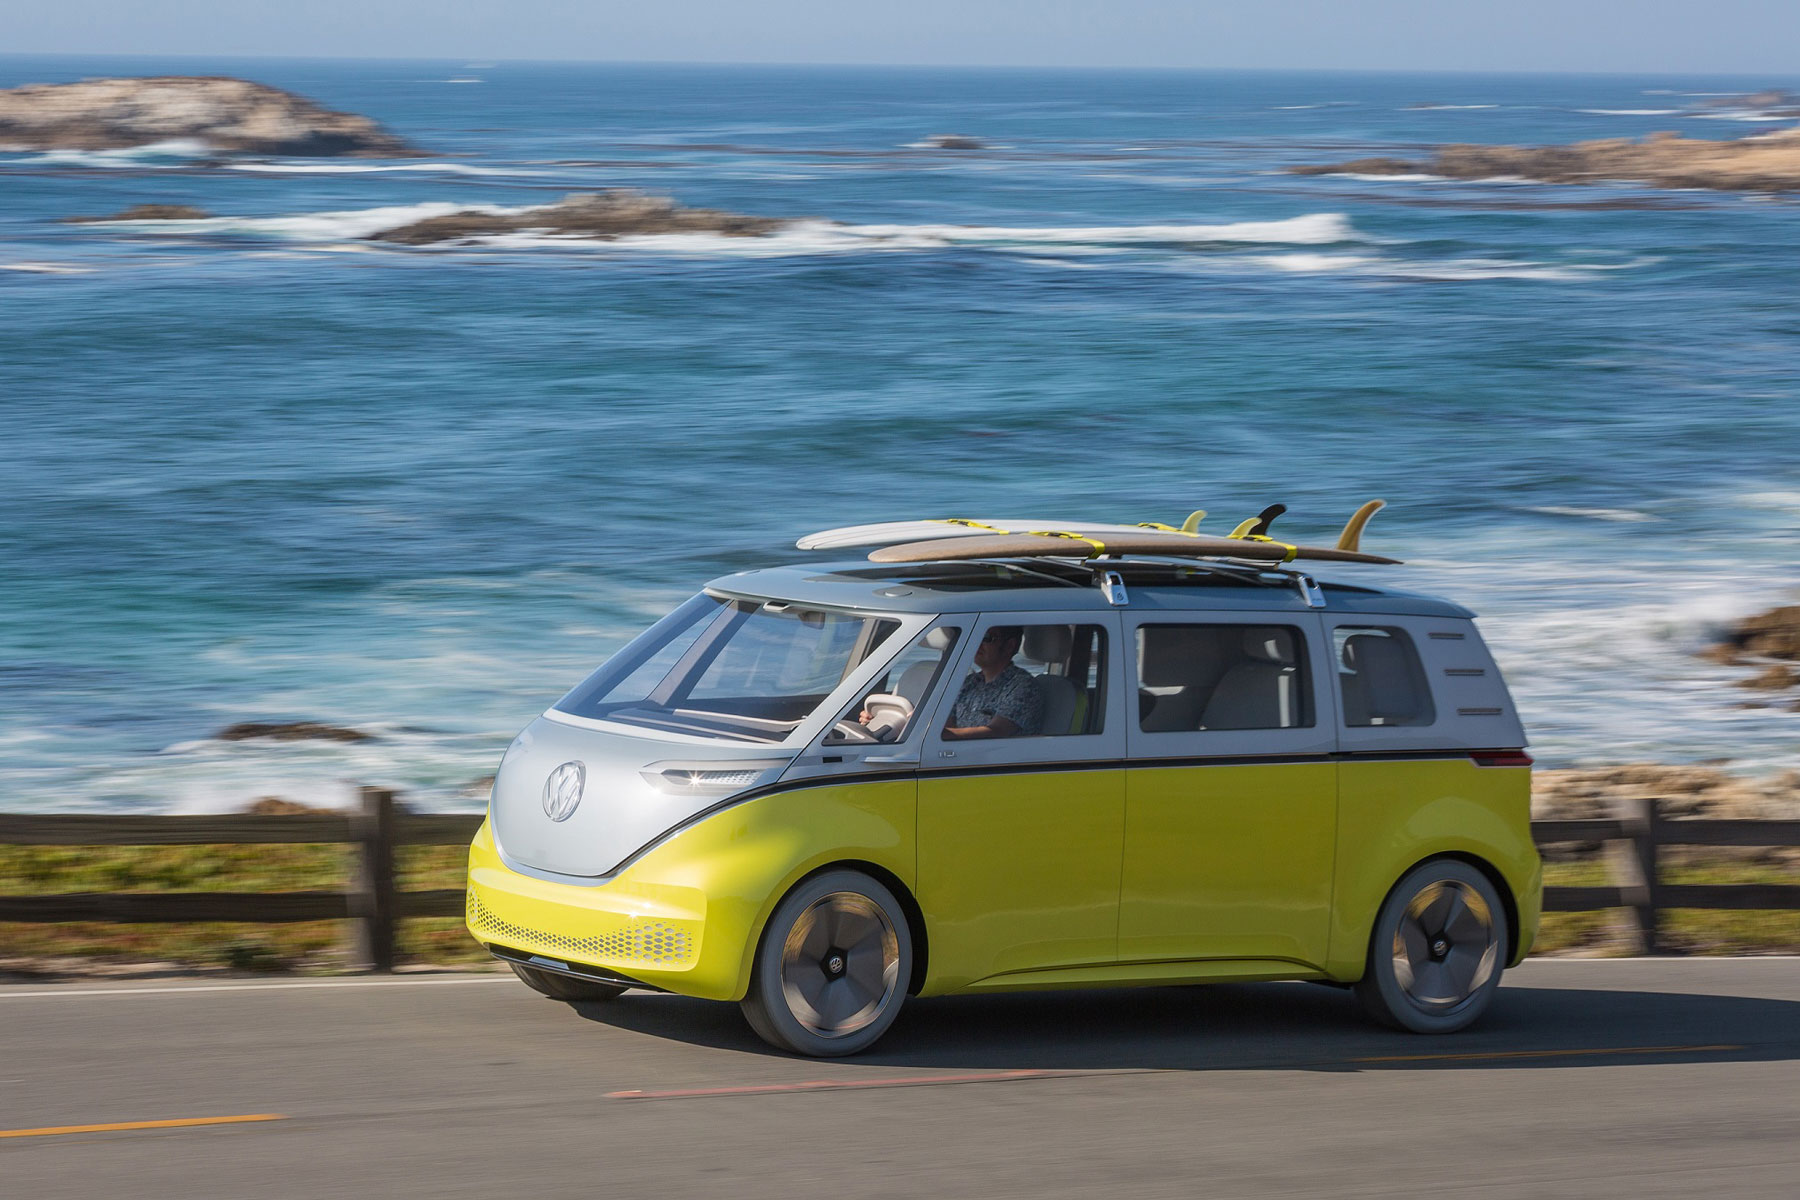 The all-electric Volkswagen I.D. Buzz concept